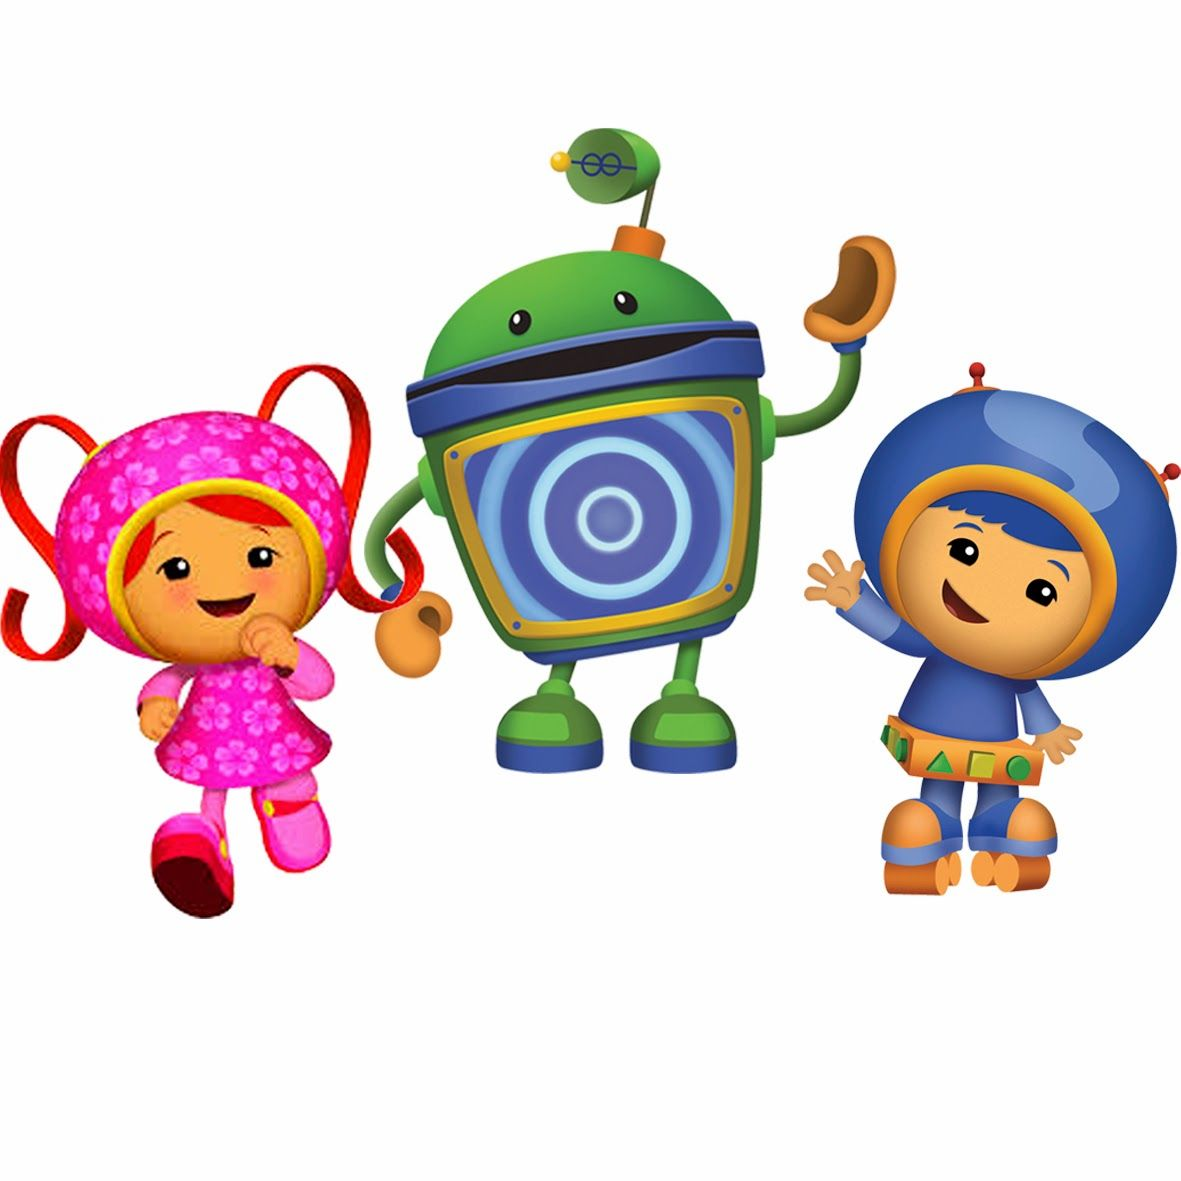 Umizoomi Free Party Printables Images And Invitations